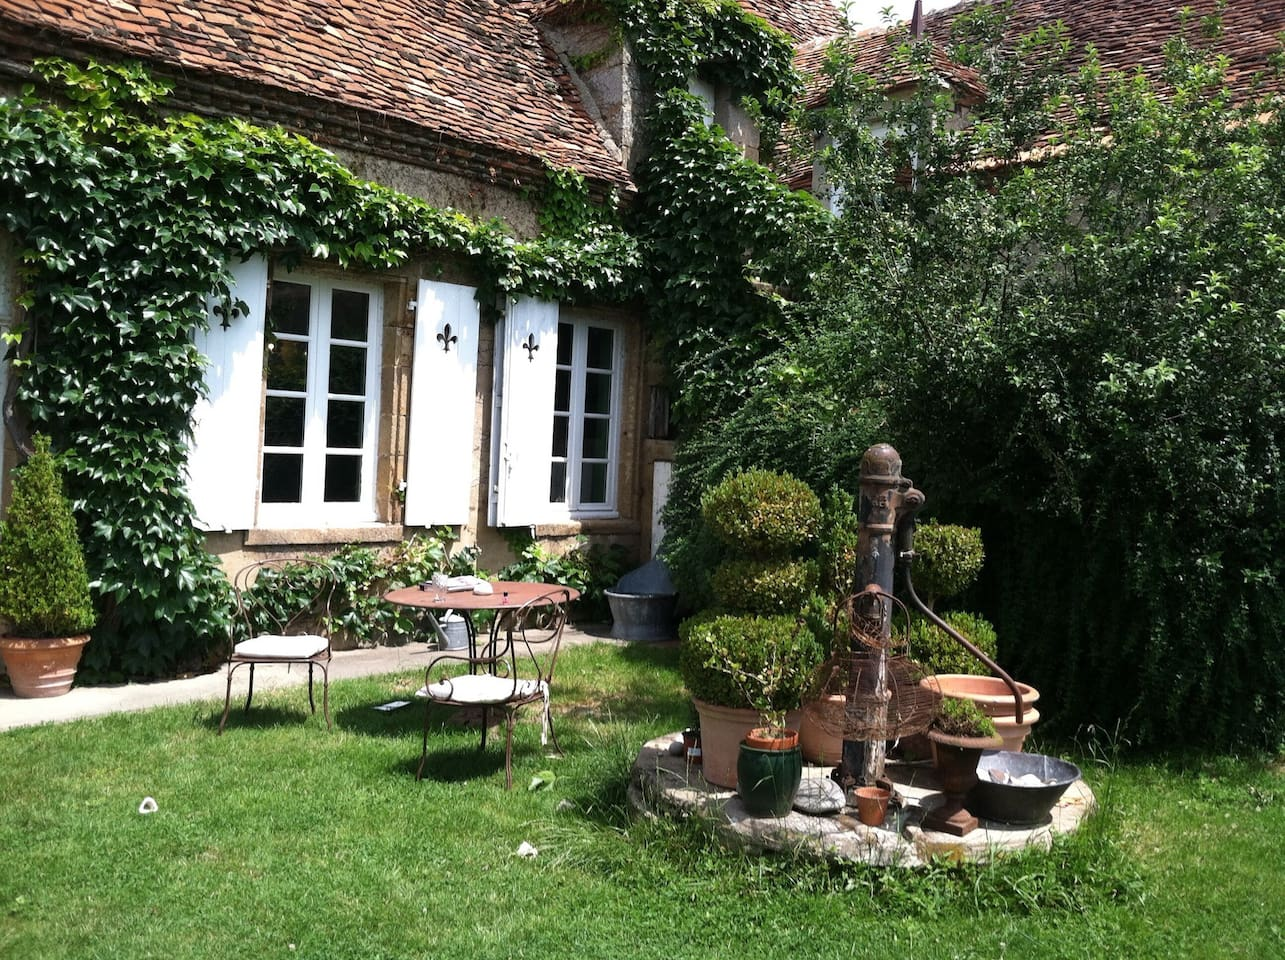 The beautiful garden and property